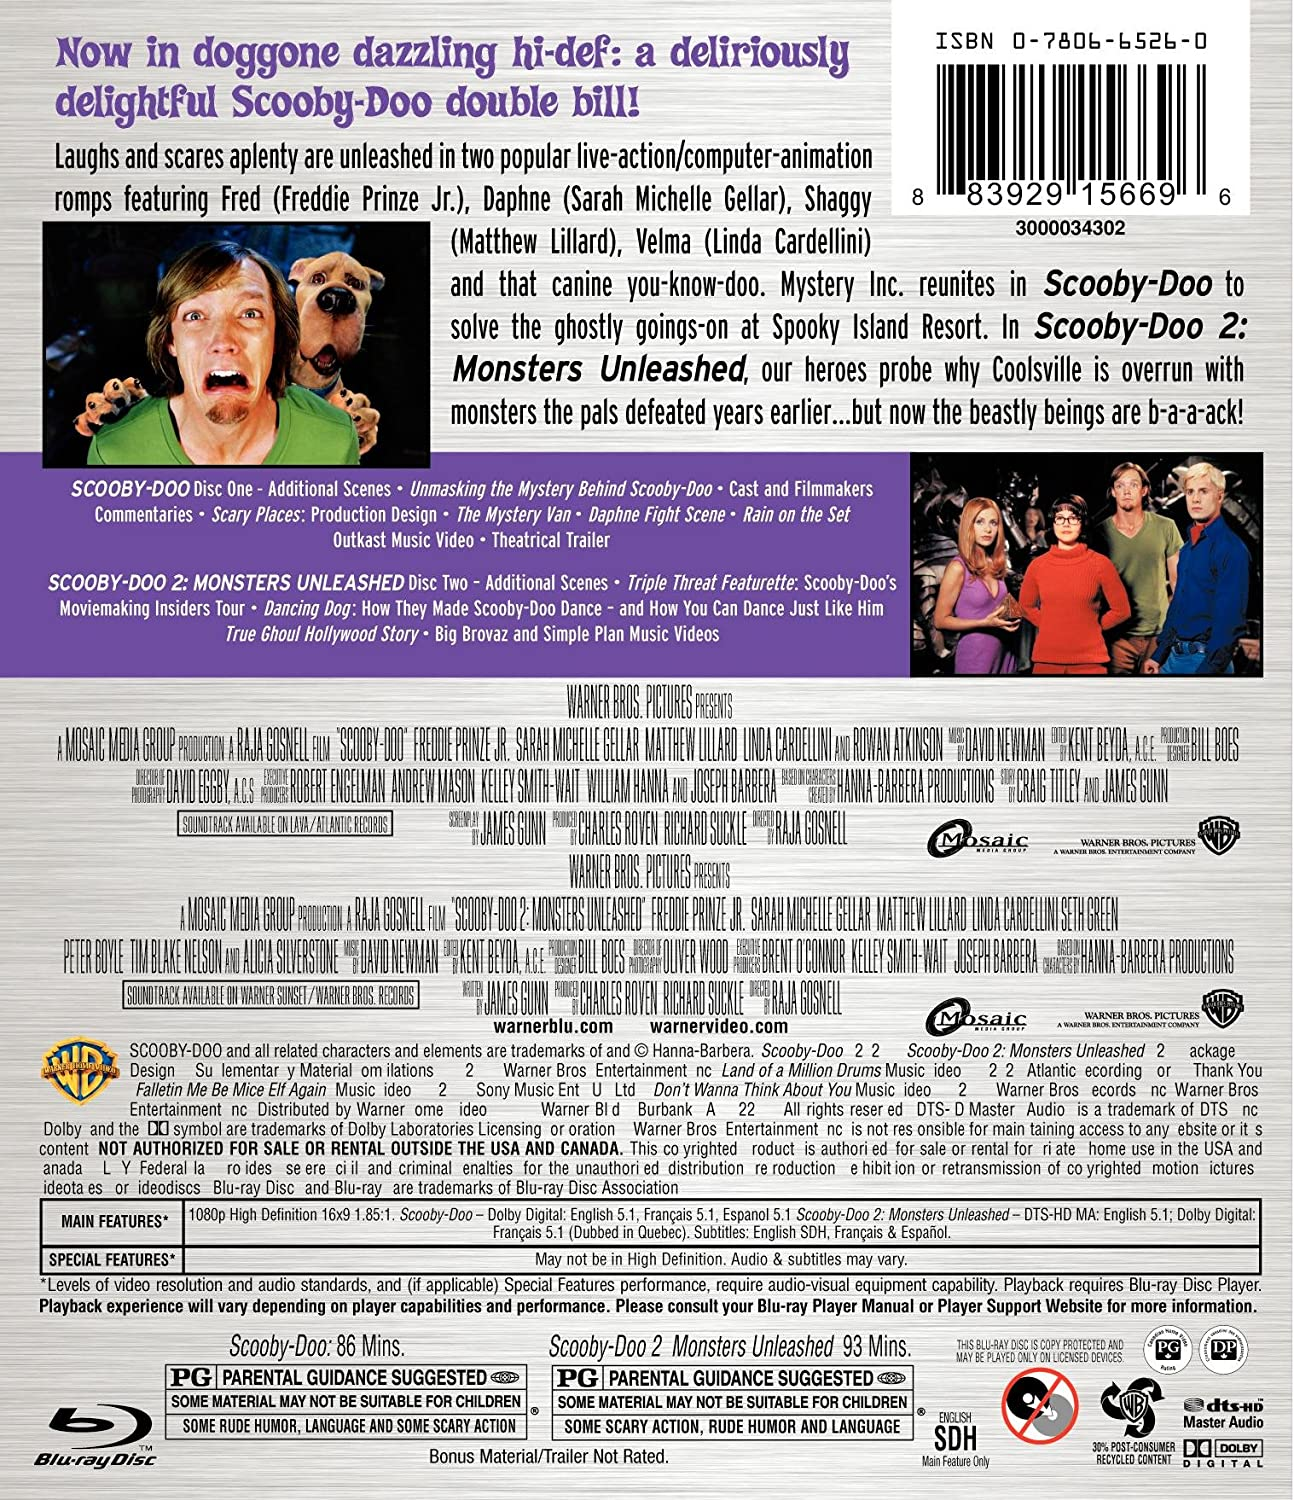 Amazon Com Scooby Doo 1 2 Collection Family Double Feature Blu Ray Freddie Prinze Jr Sarah Michelle Gellar Matthew Lillard Linda Cardellini Movies Tv